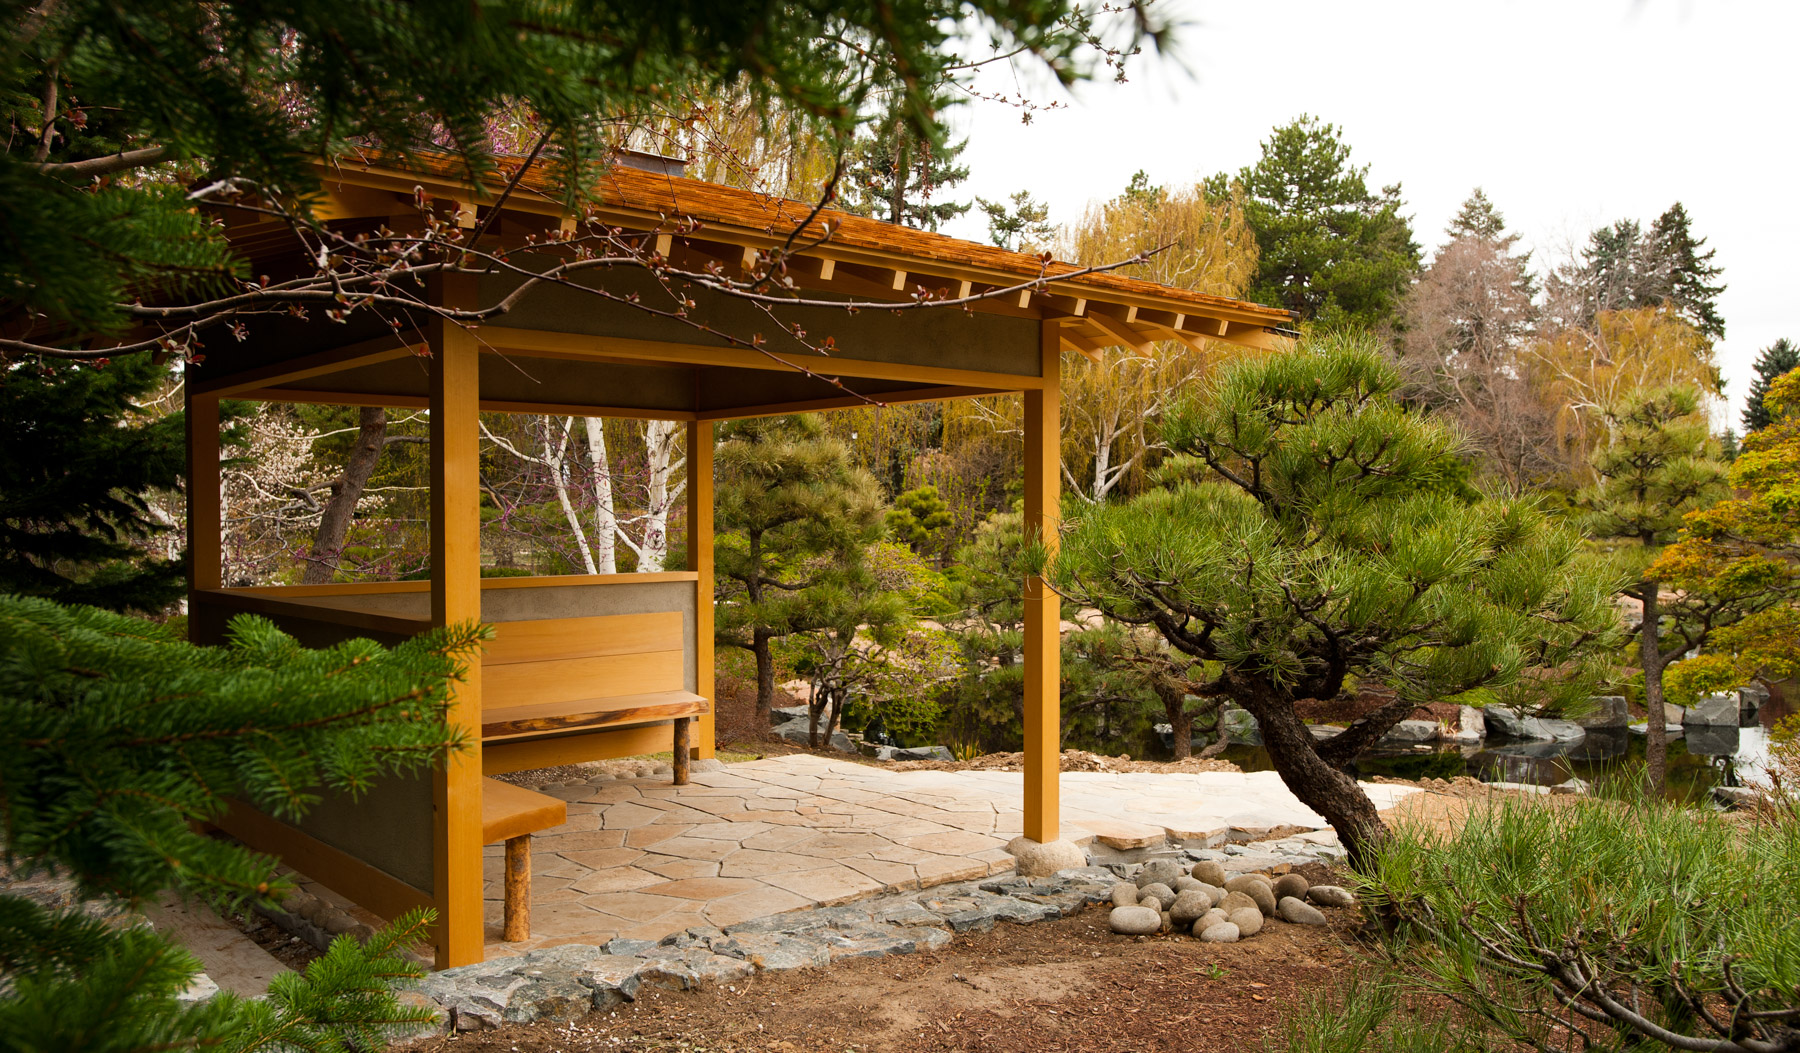 Harvesting Tranquility In North American Japanese Gardens - ArtBeat